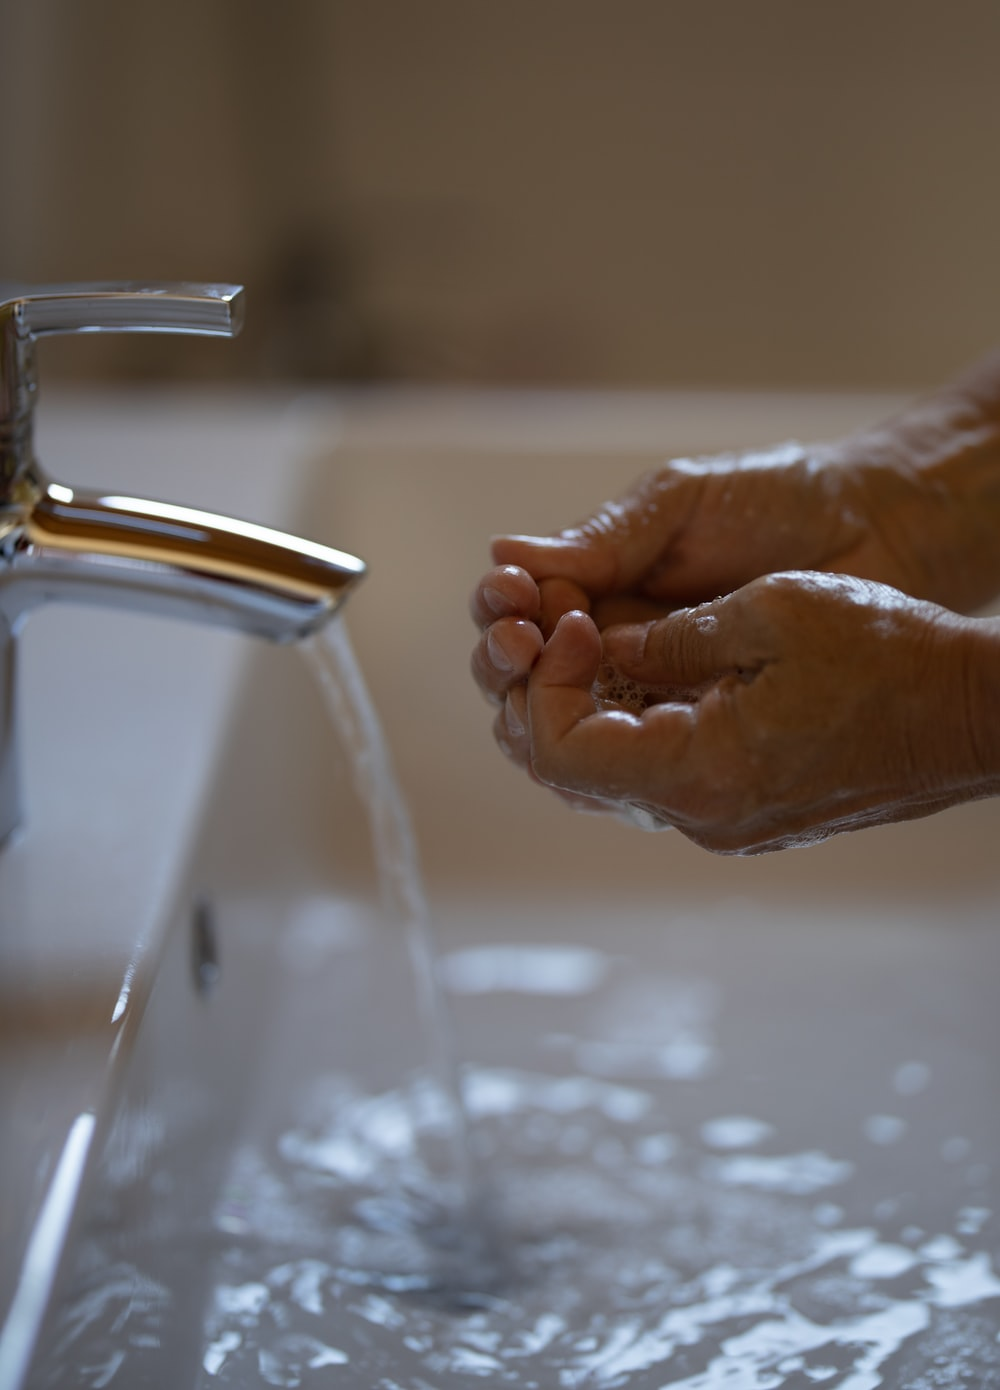 person washing hands on faucet